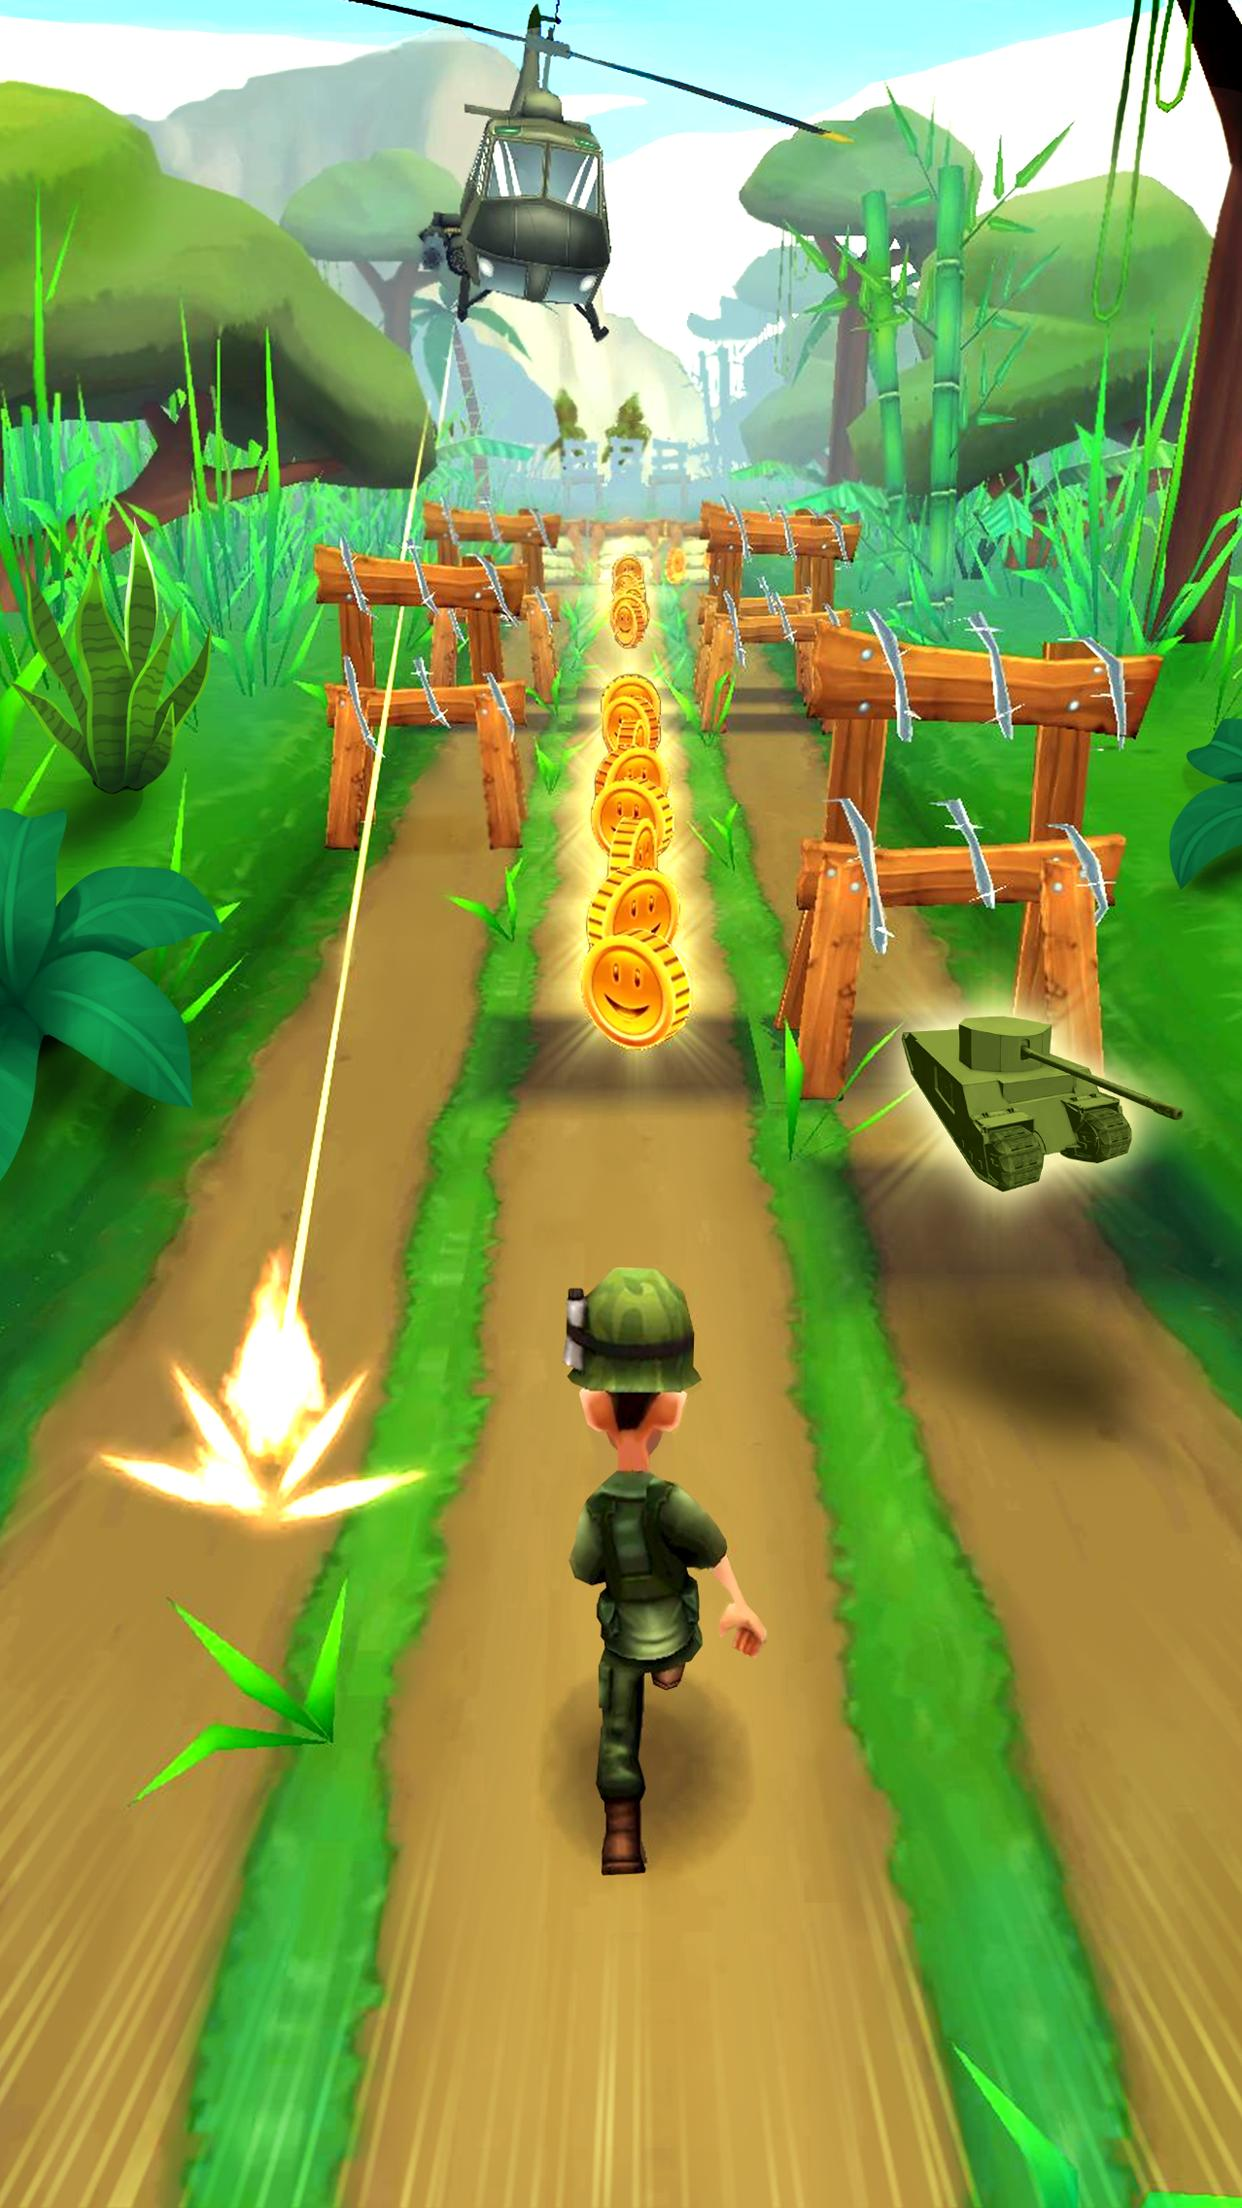 Run Forrest Run - New Games 2020: Running Games 1.6.4 Screenshot 10